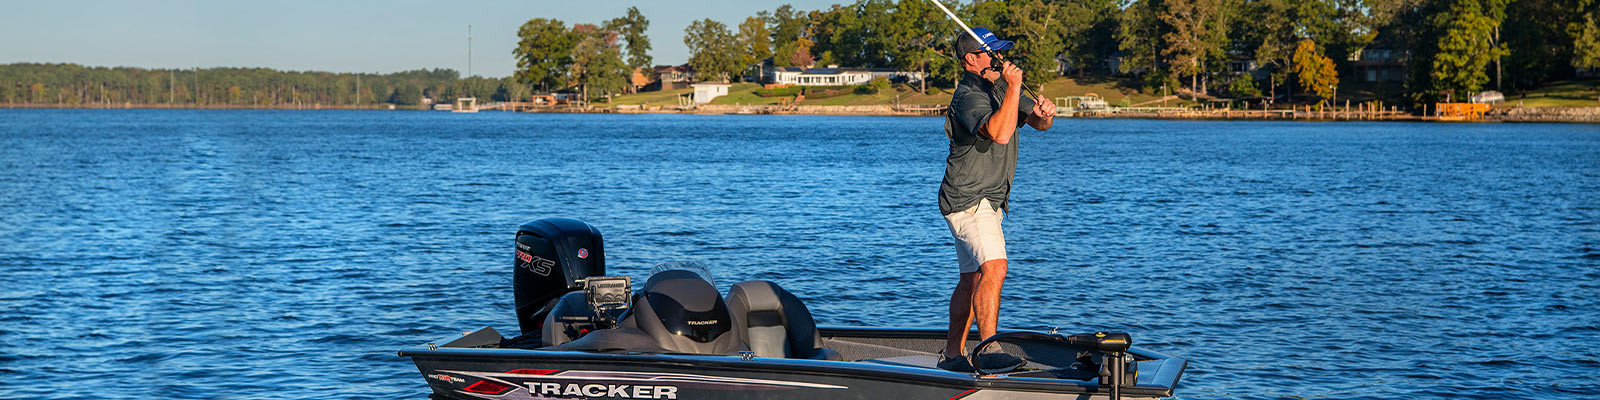 Lowrance HOOK Reveal Promo Image 4